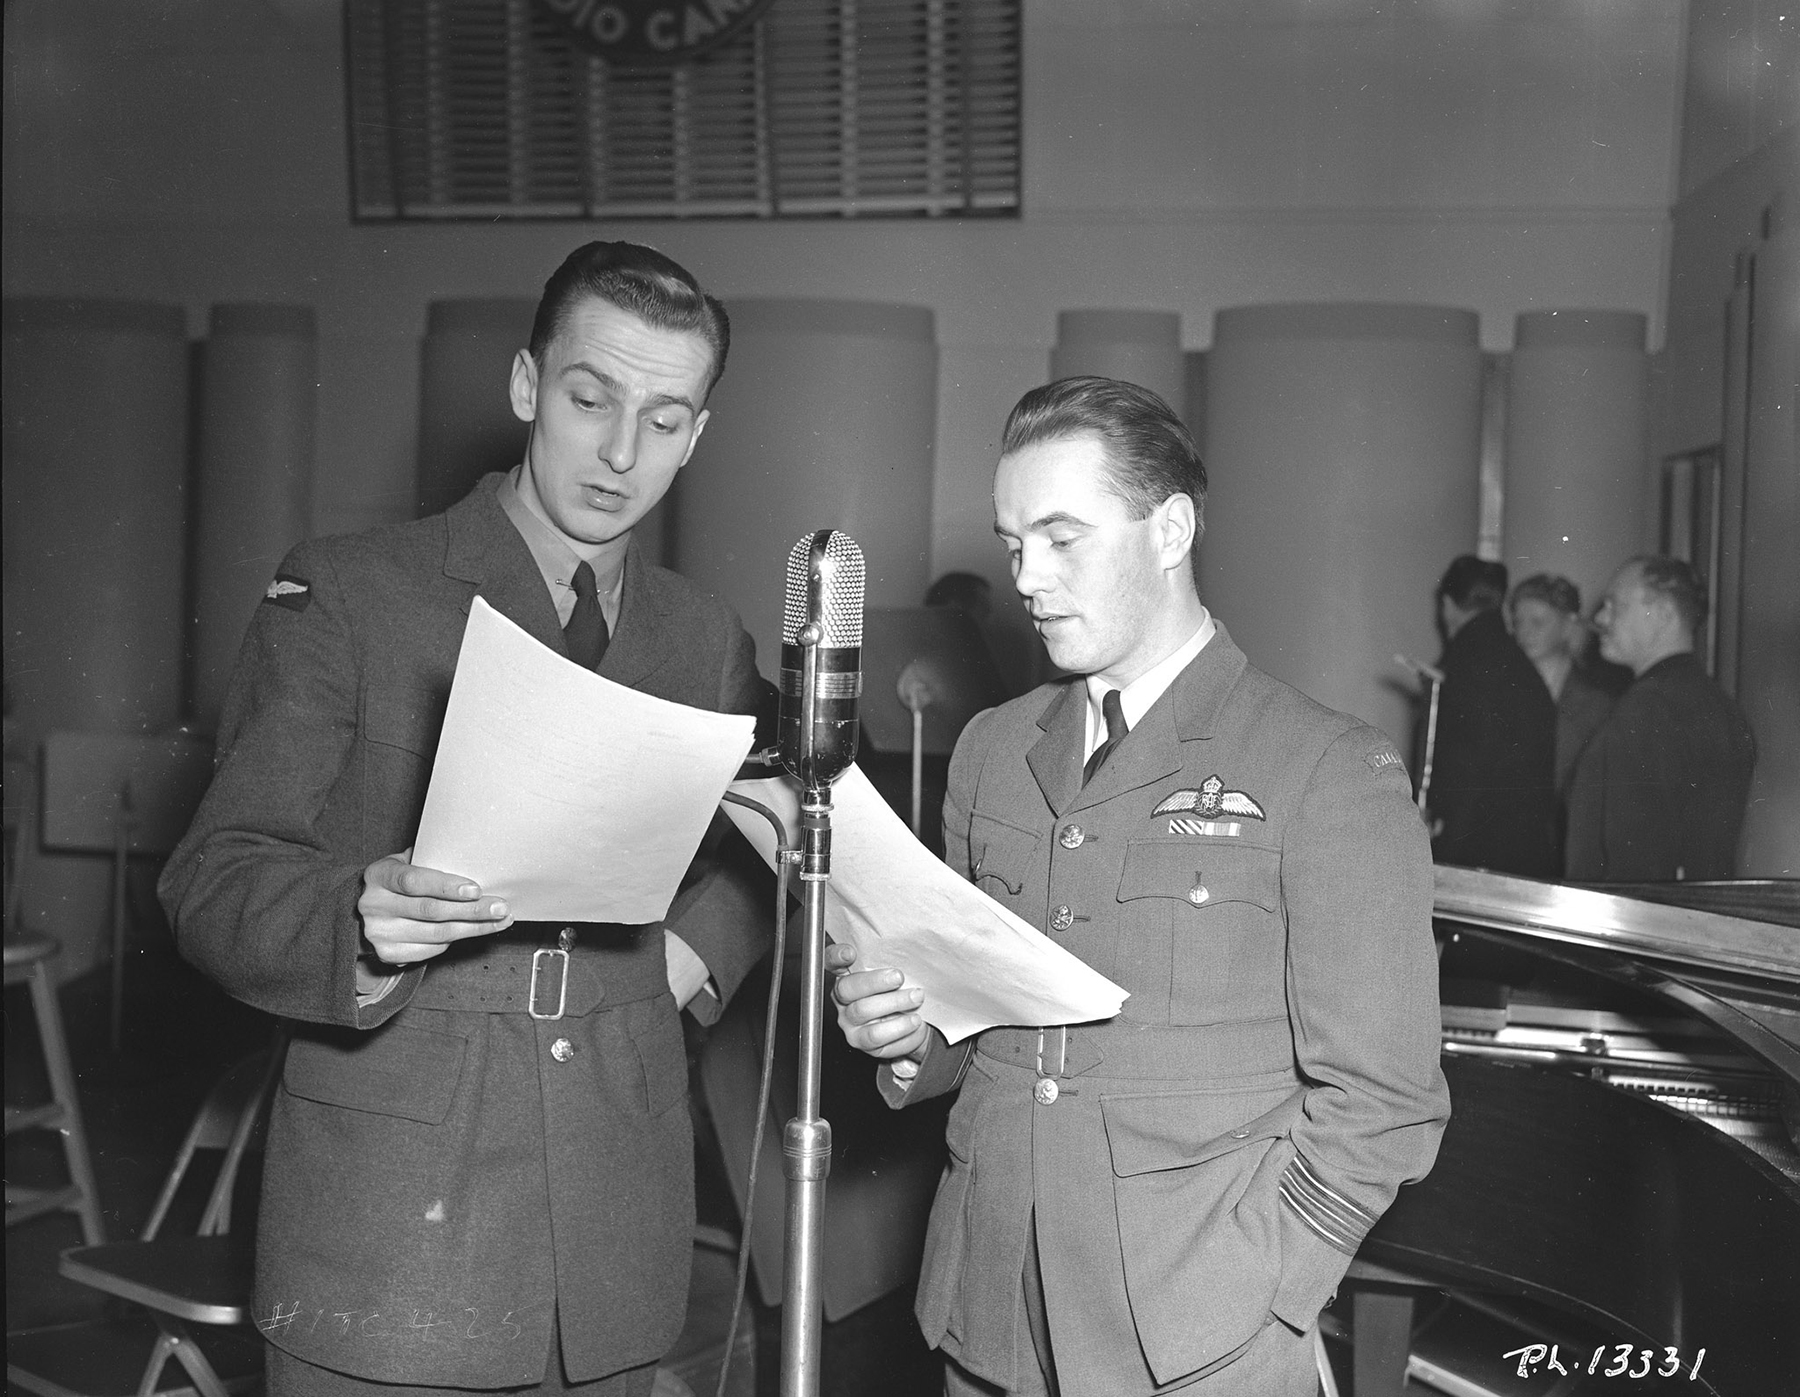 On February 14, 1943, Royal Canadian Air Force Distinguished Flying Cross recipient Squadron Leader Ken Boomer is interviewed by Aircraftman Second Class F. Markle during the recording of one of American comedian and radio star Jack Benny's regular Sunday night radio programs. This one was recorded in Toronto, Ontario, in front of a live audience comprising  RCAF and other Canadian Armed Forces members. PHOTO: DND Archives, PL-13331